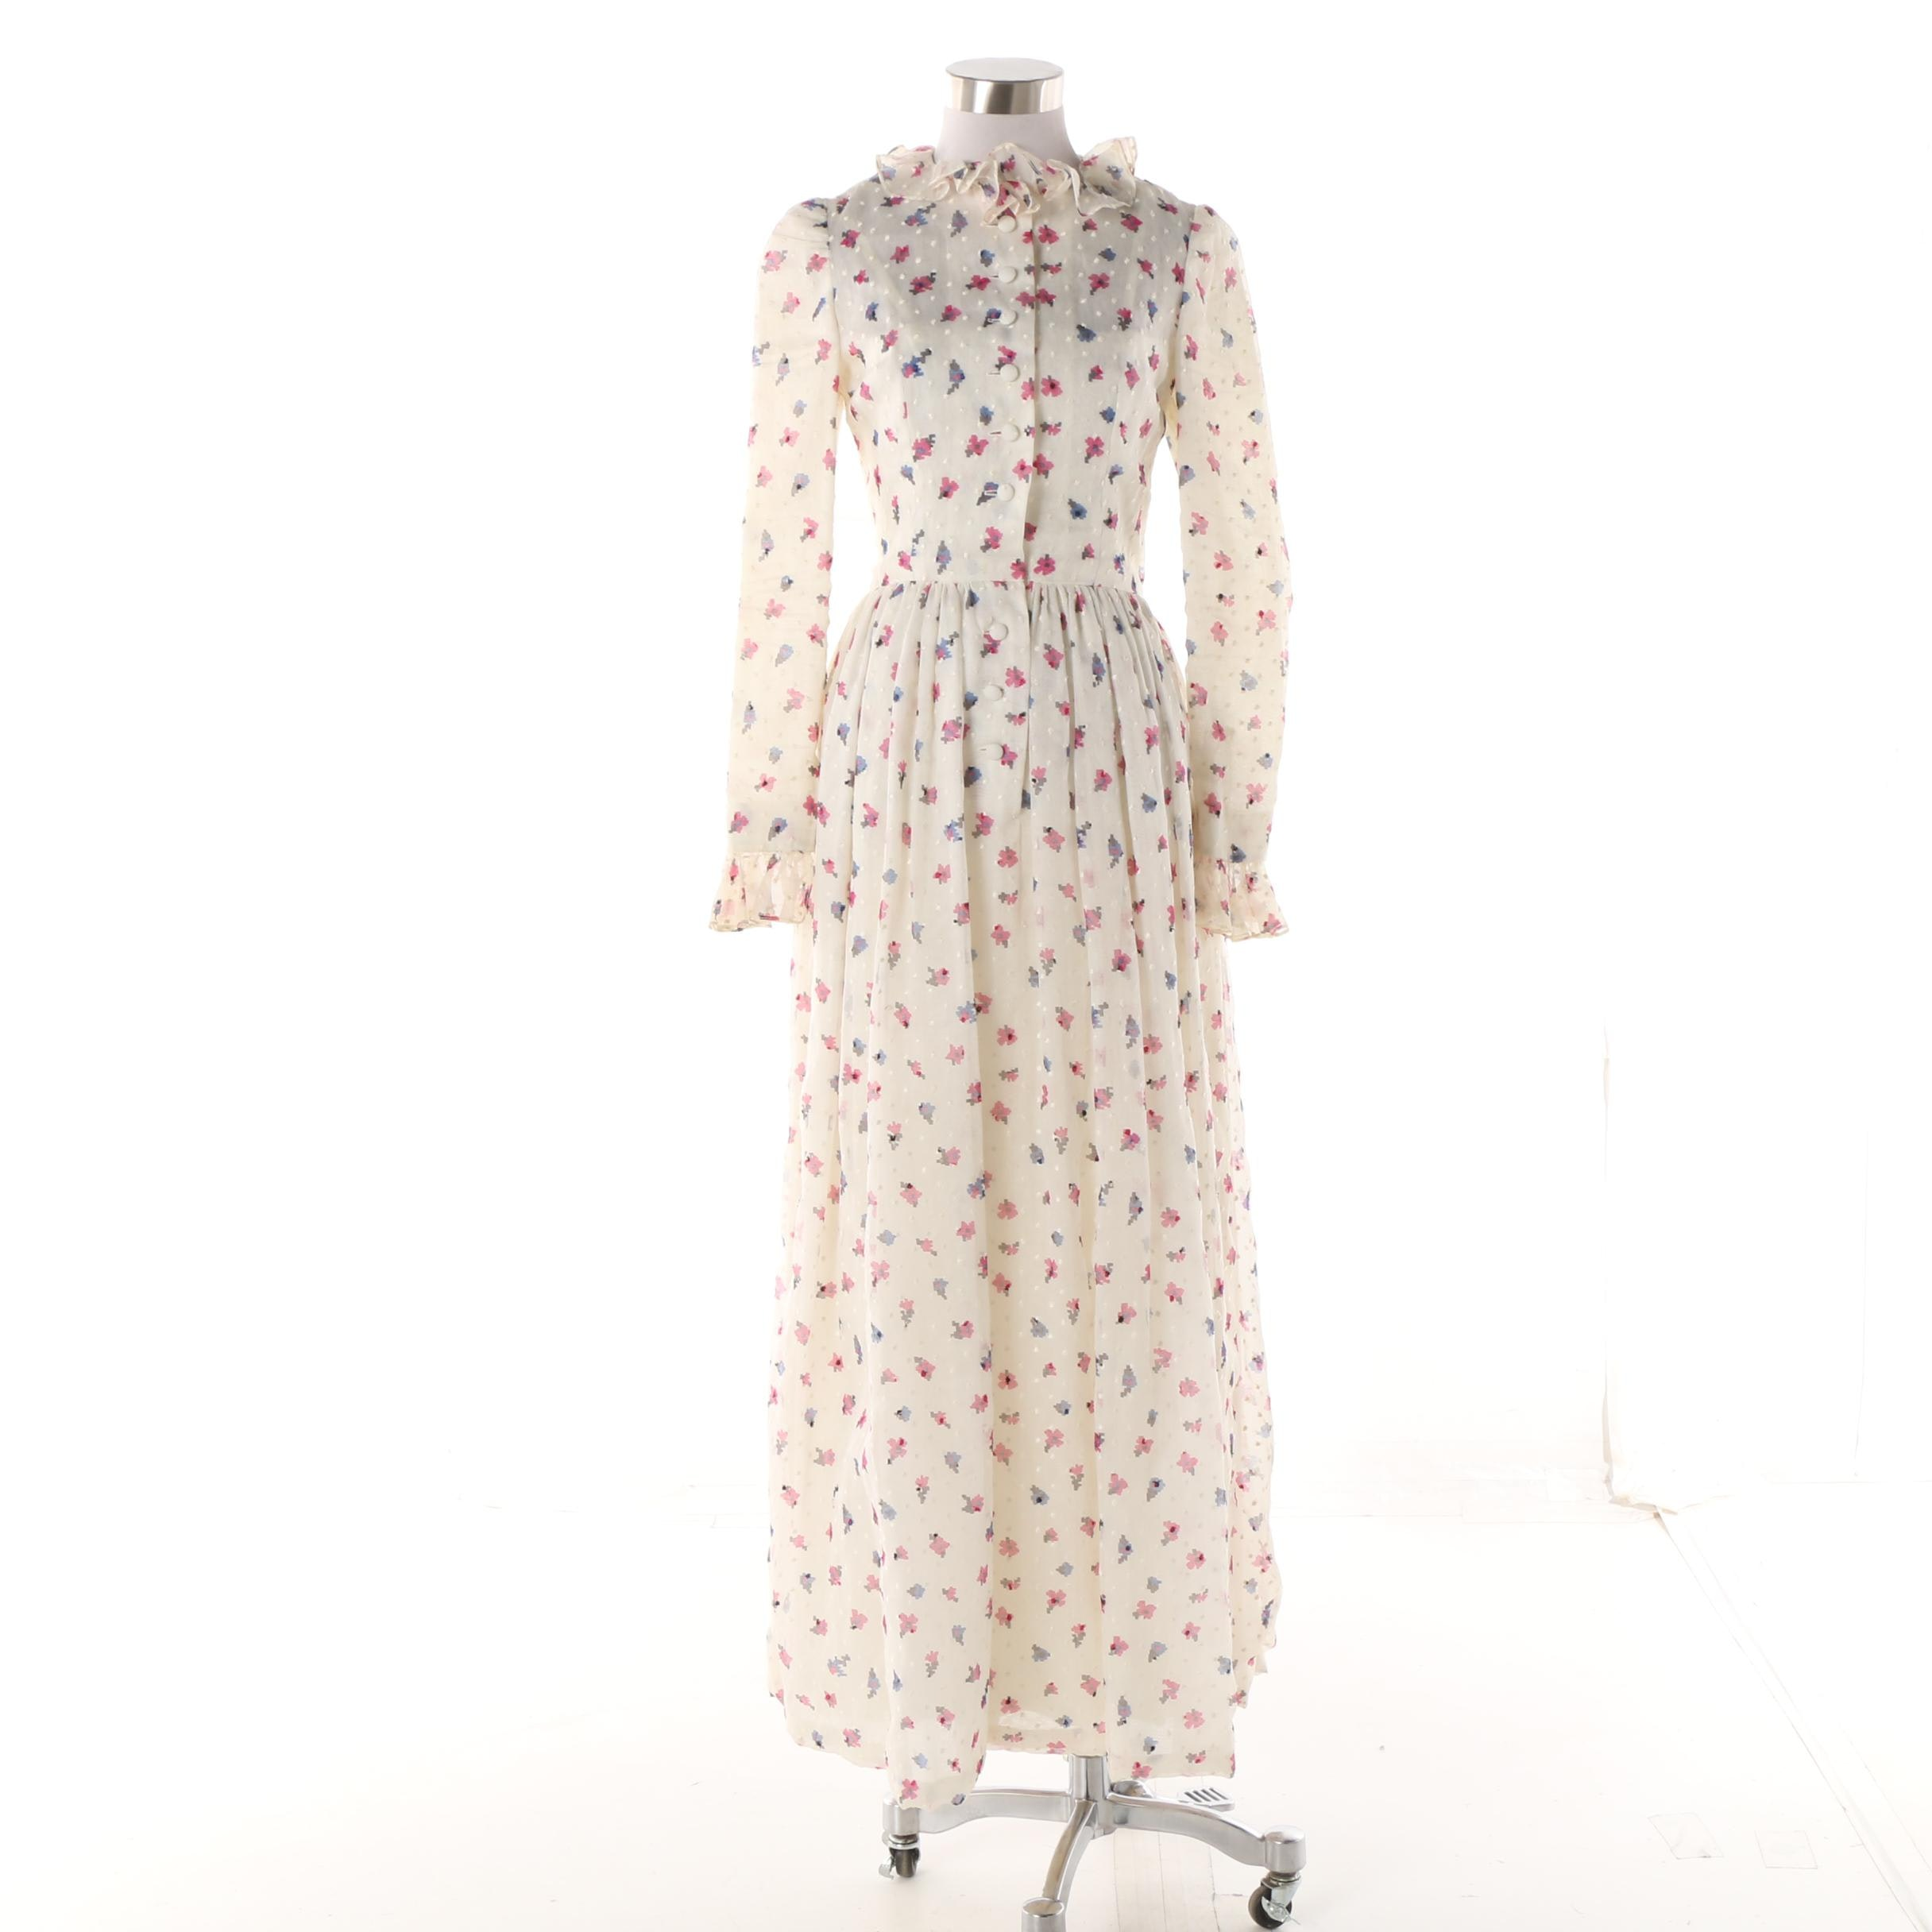 Gérard Pipart Nina Ricci for Bonwit Teller Swiss Dot Floral Maxi Dress